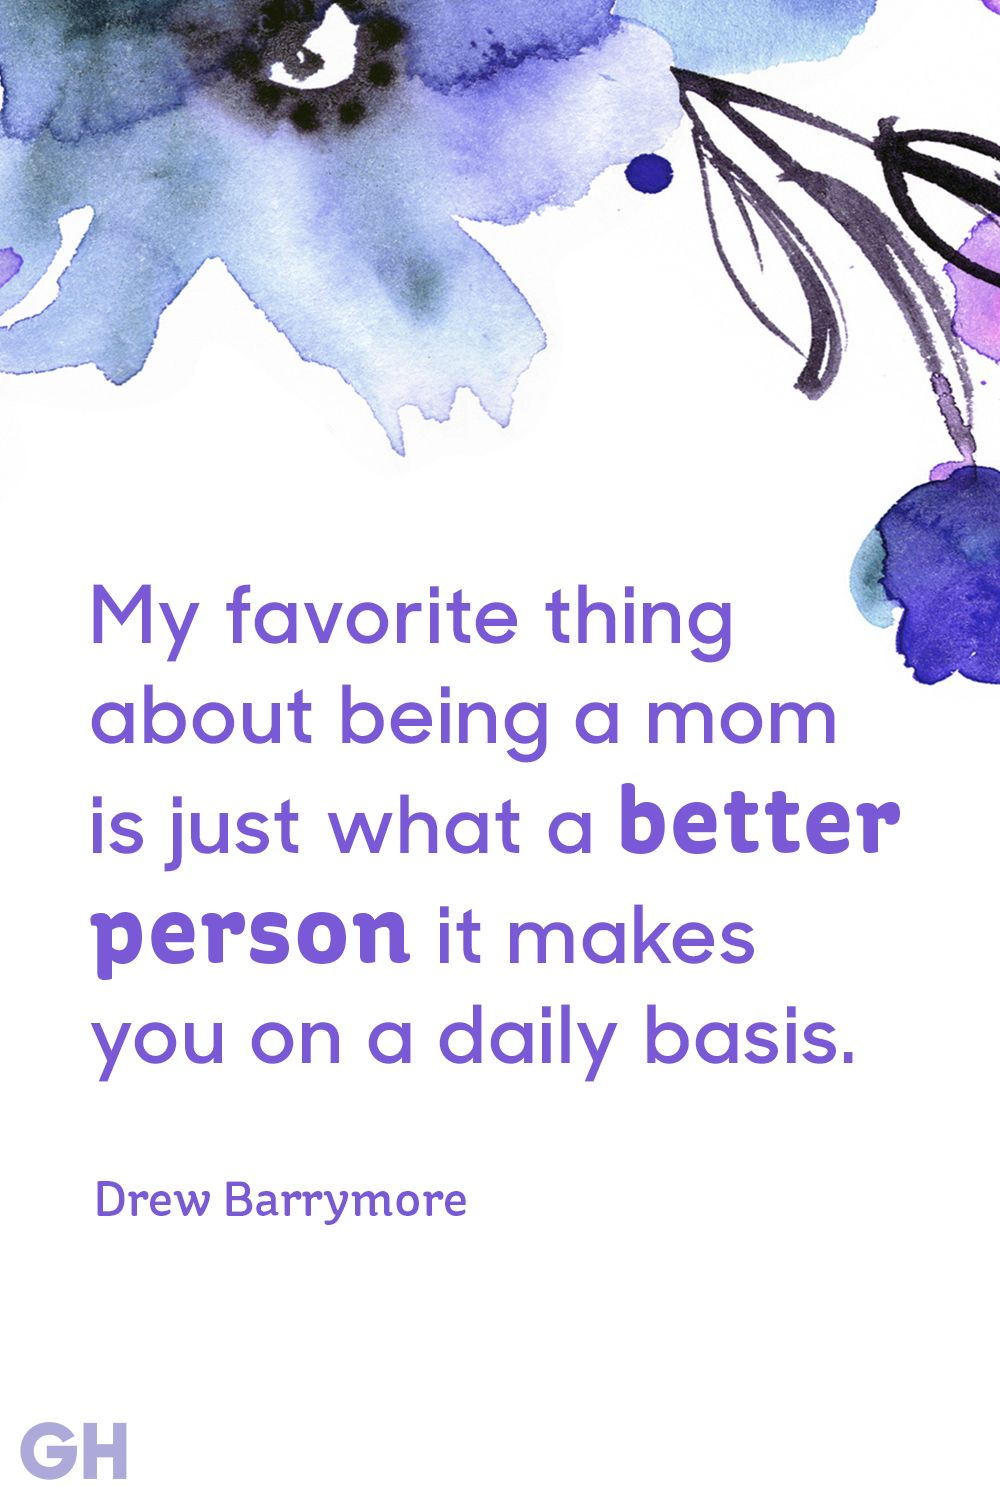 drew barrymore mother's day quote